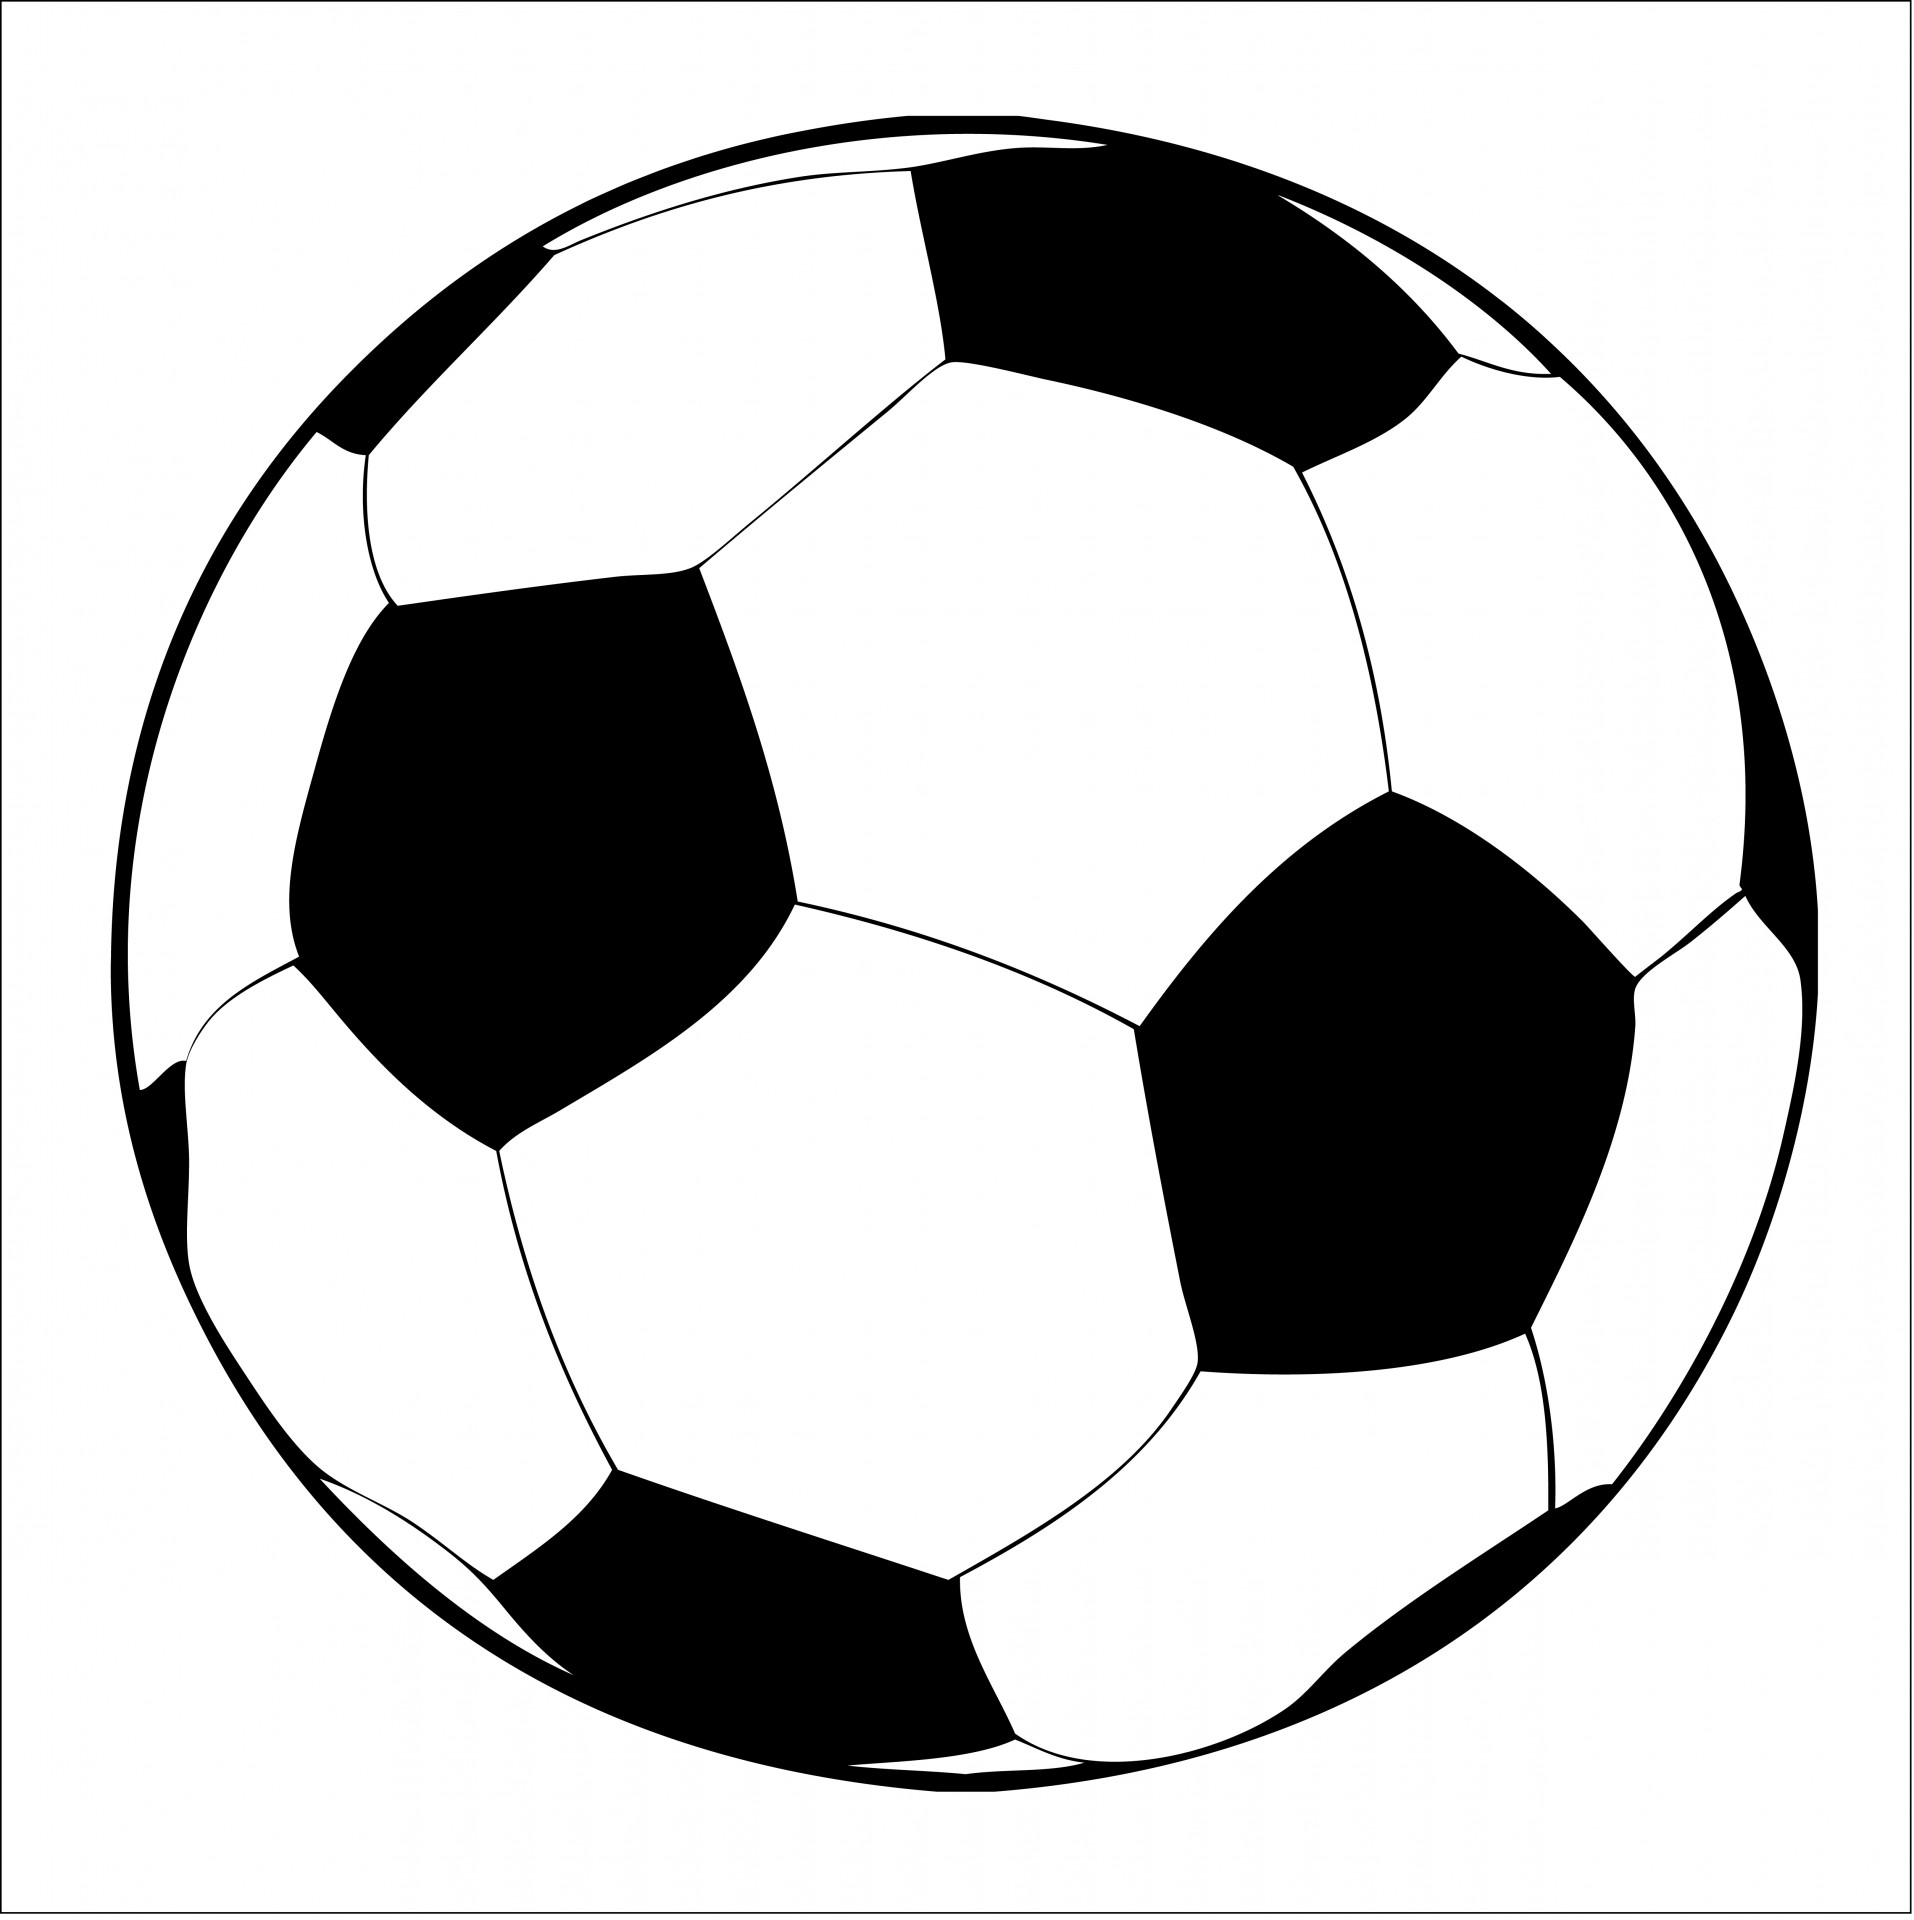 Soccer Ball Clipart Free Stock Photo - Public Domain Pictures